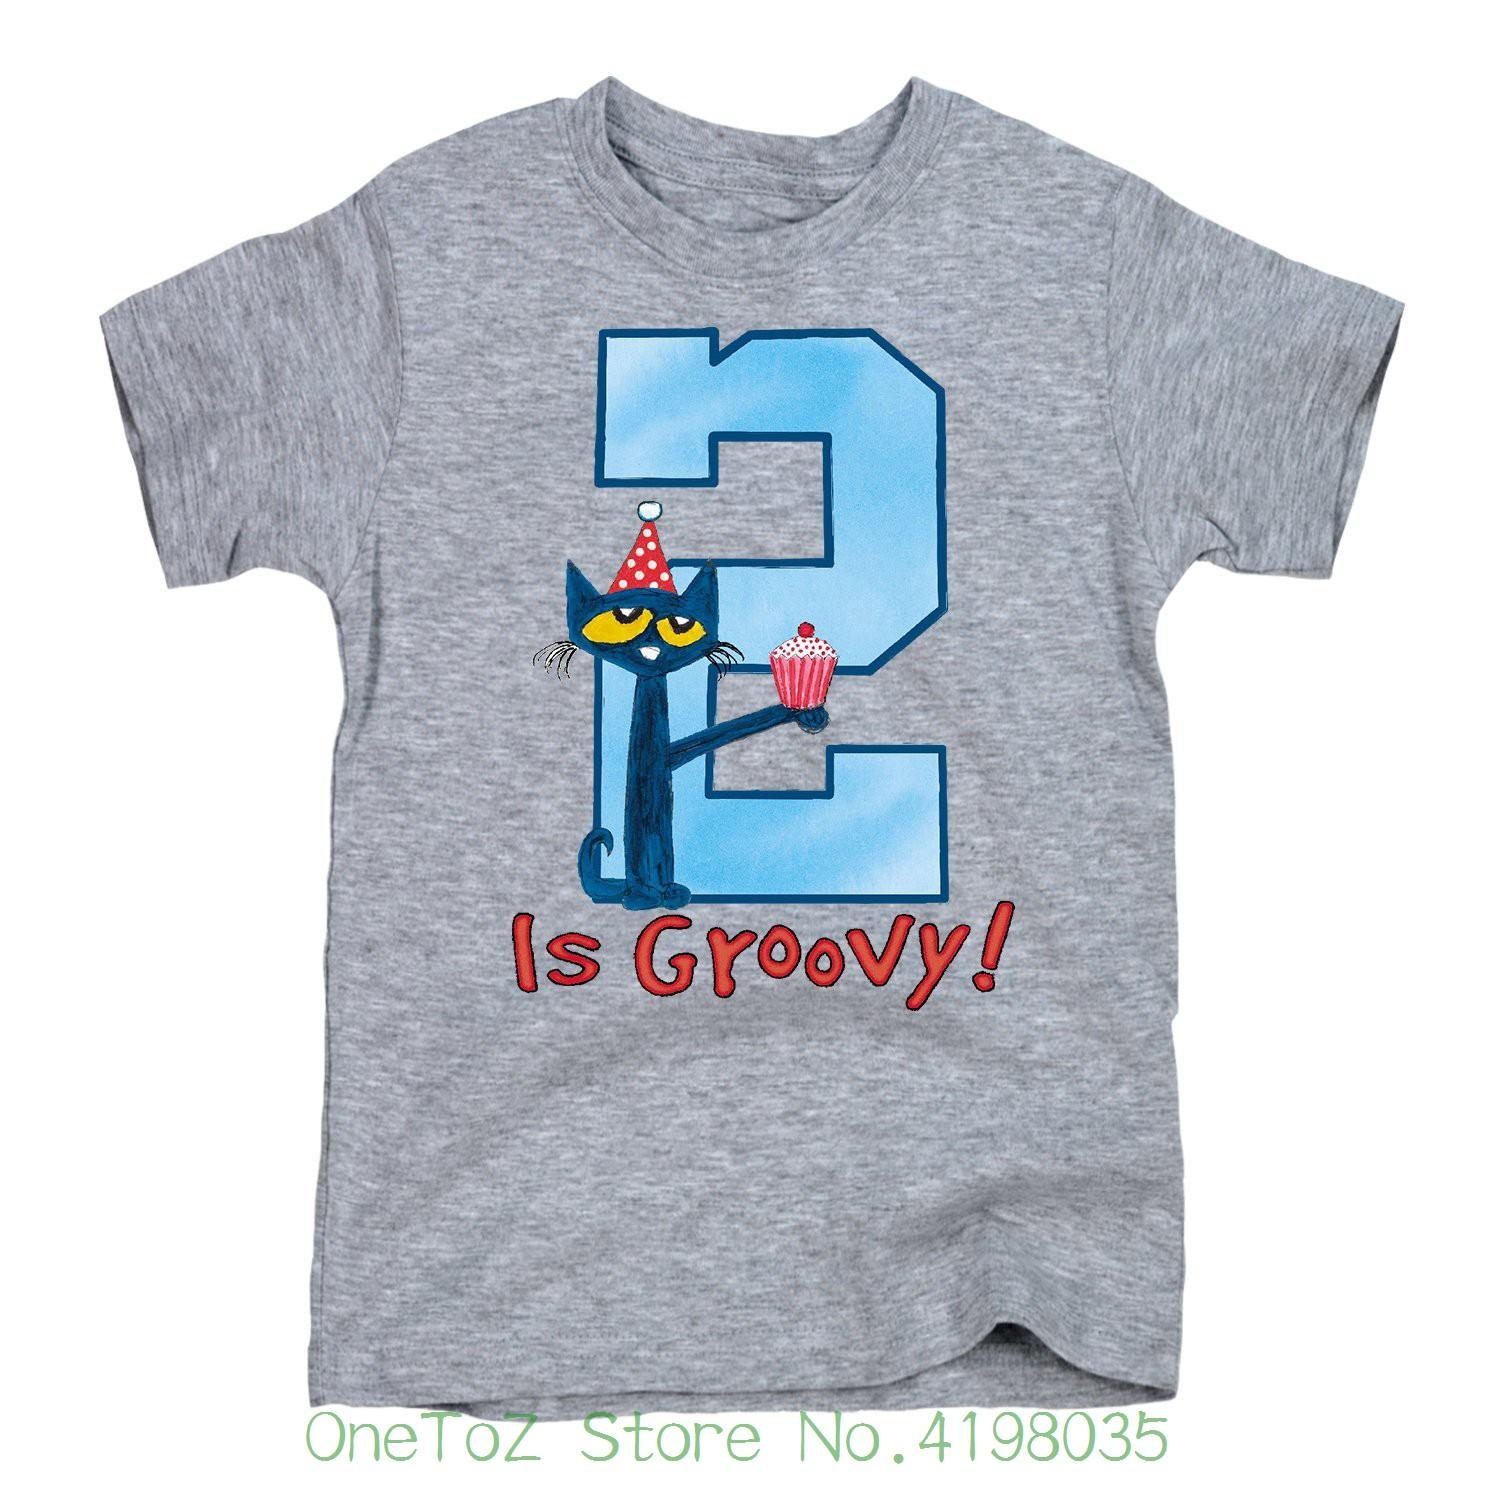 2nd Birthday Boys Toddler Short Sleeve Tee New Fashion Mens Tshirt Cotton T Shirts Vintage Band From Onetozstore